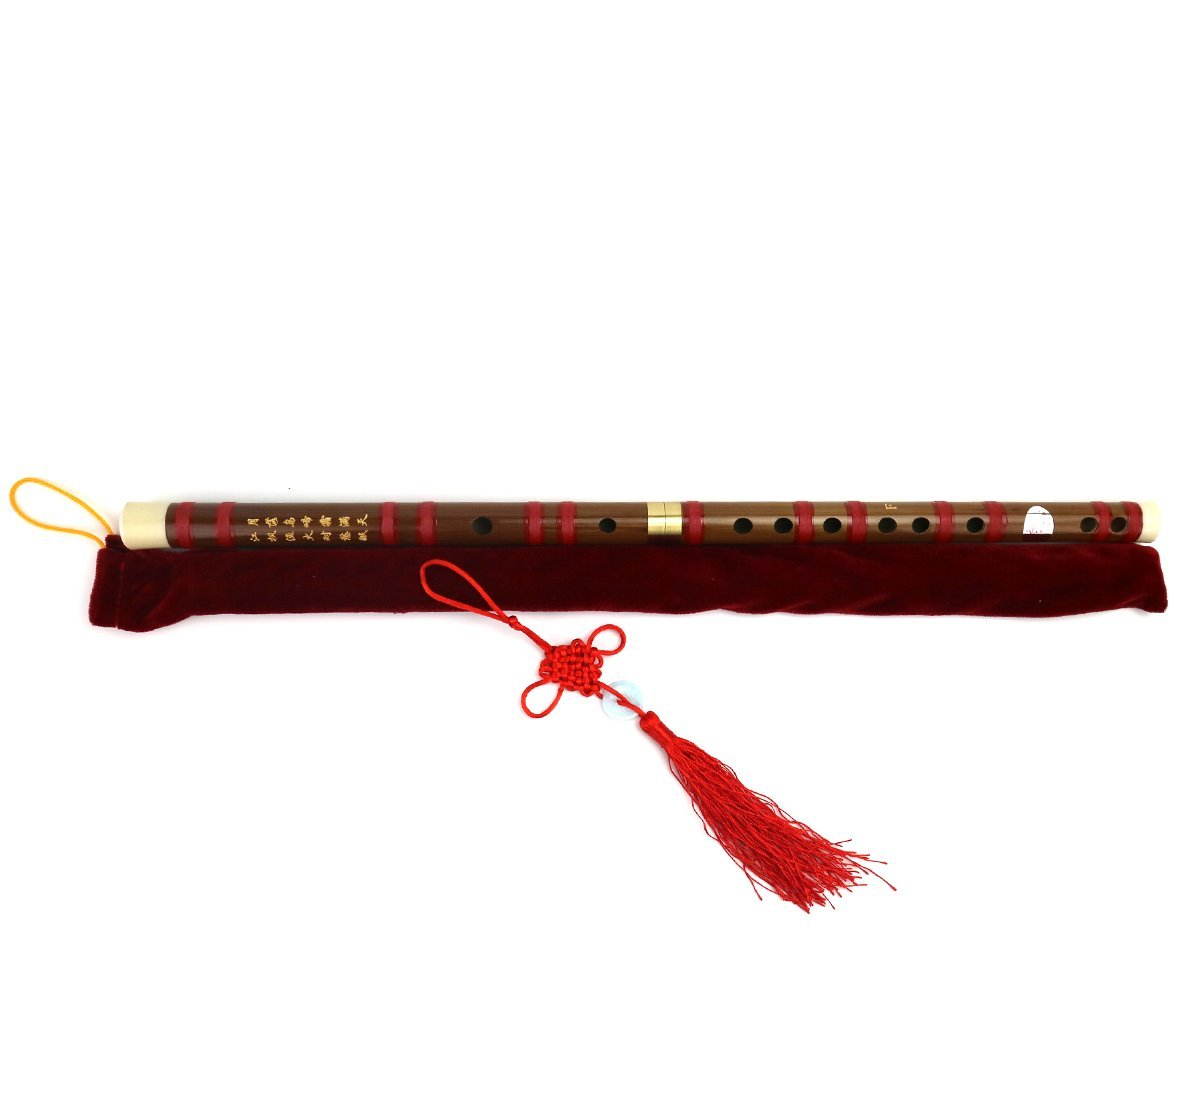 Flute Etudes,Chinese Bamboo Flute Music Fife Flute and Modern Alto Flute with Wholesale Bulk Plastic Champagne Flutes,Traditional Handmade Chinese Musical Instrument (F-RED)